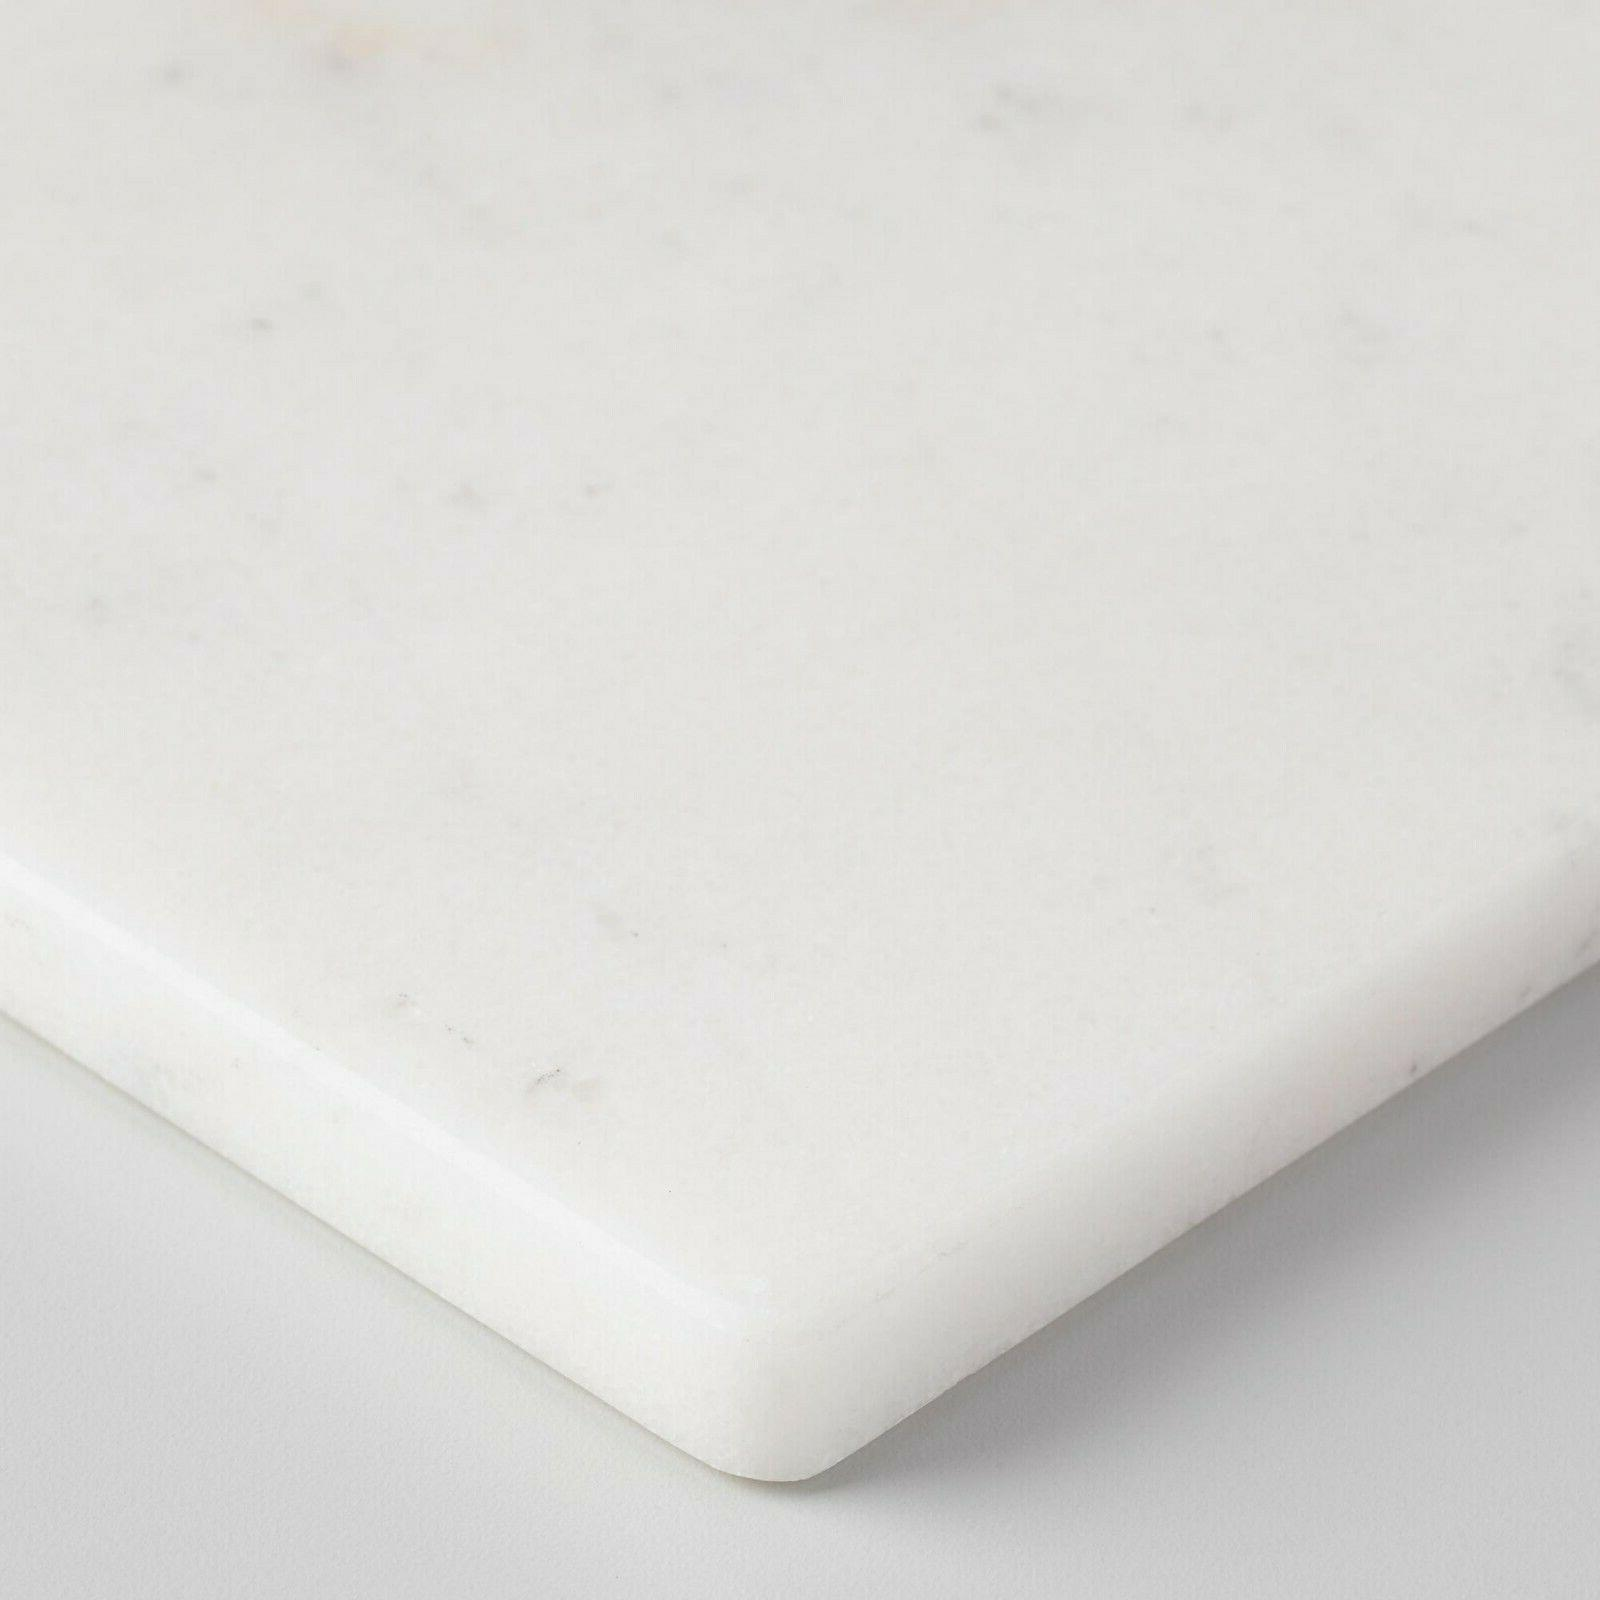 White Marble Board Crafted Freeship